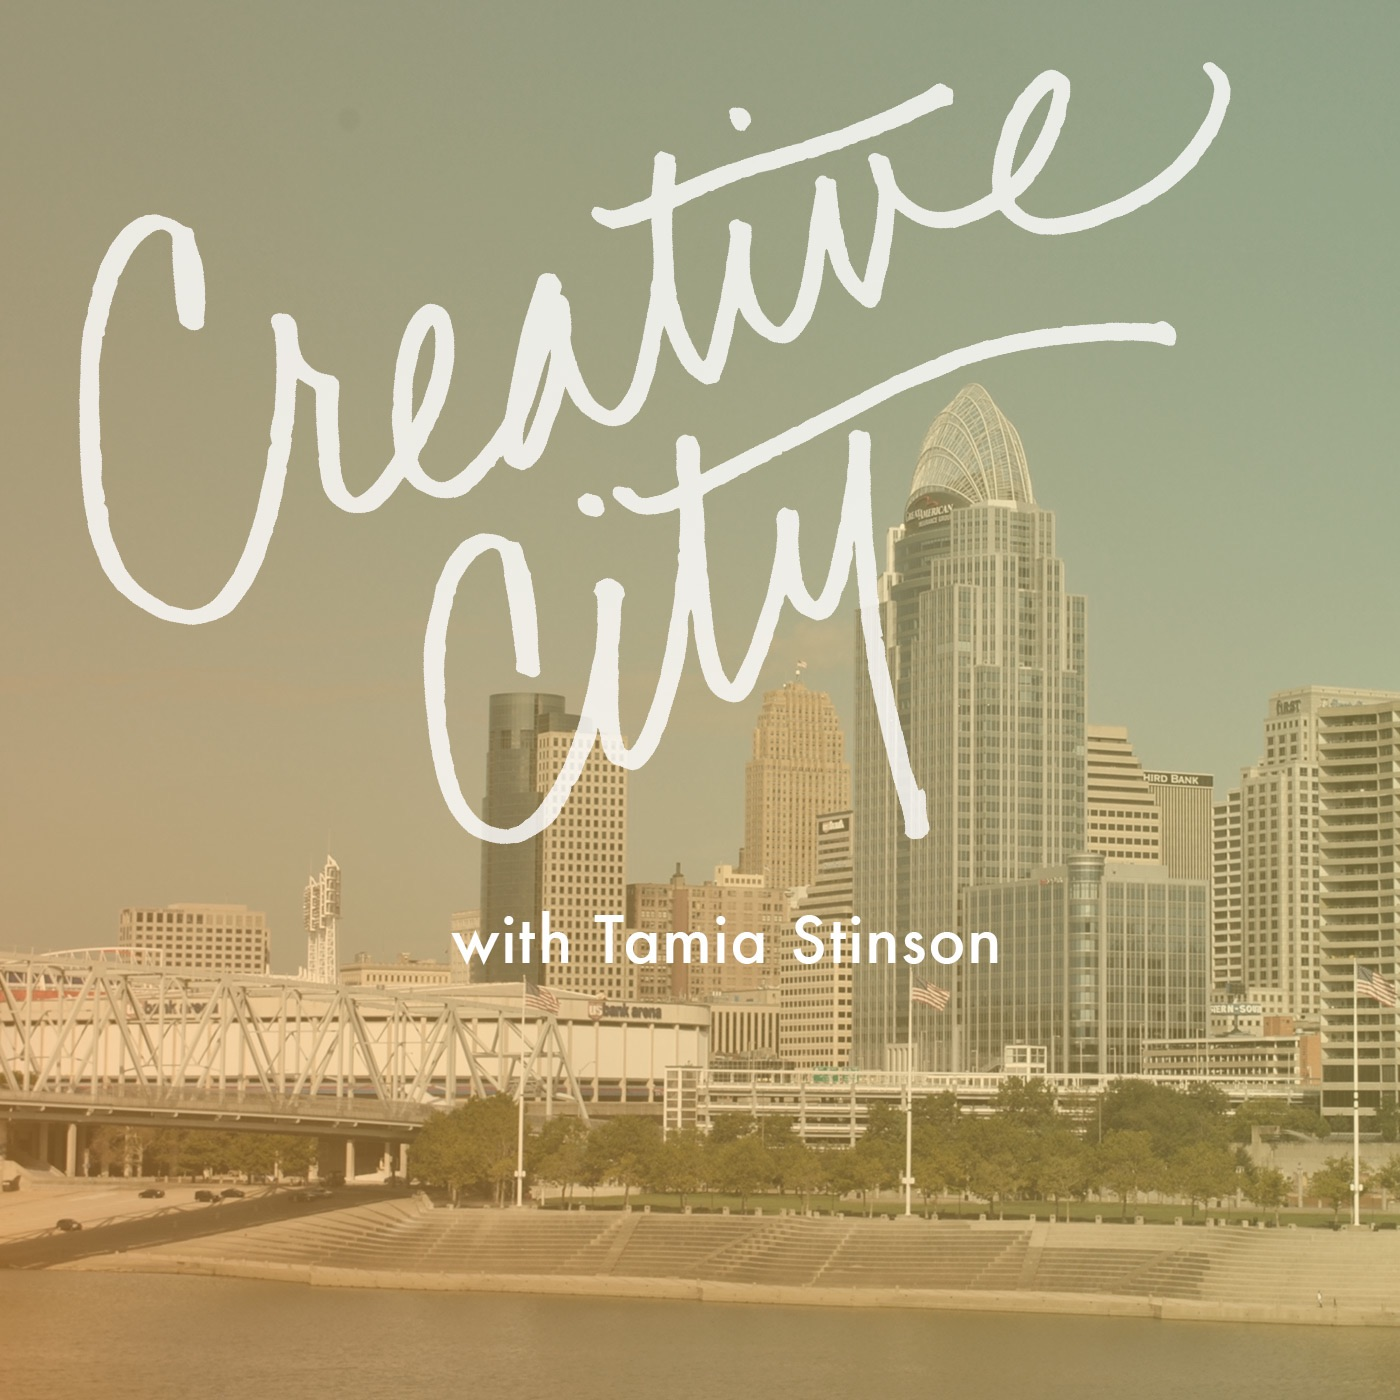 Creative City Podcast